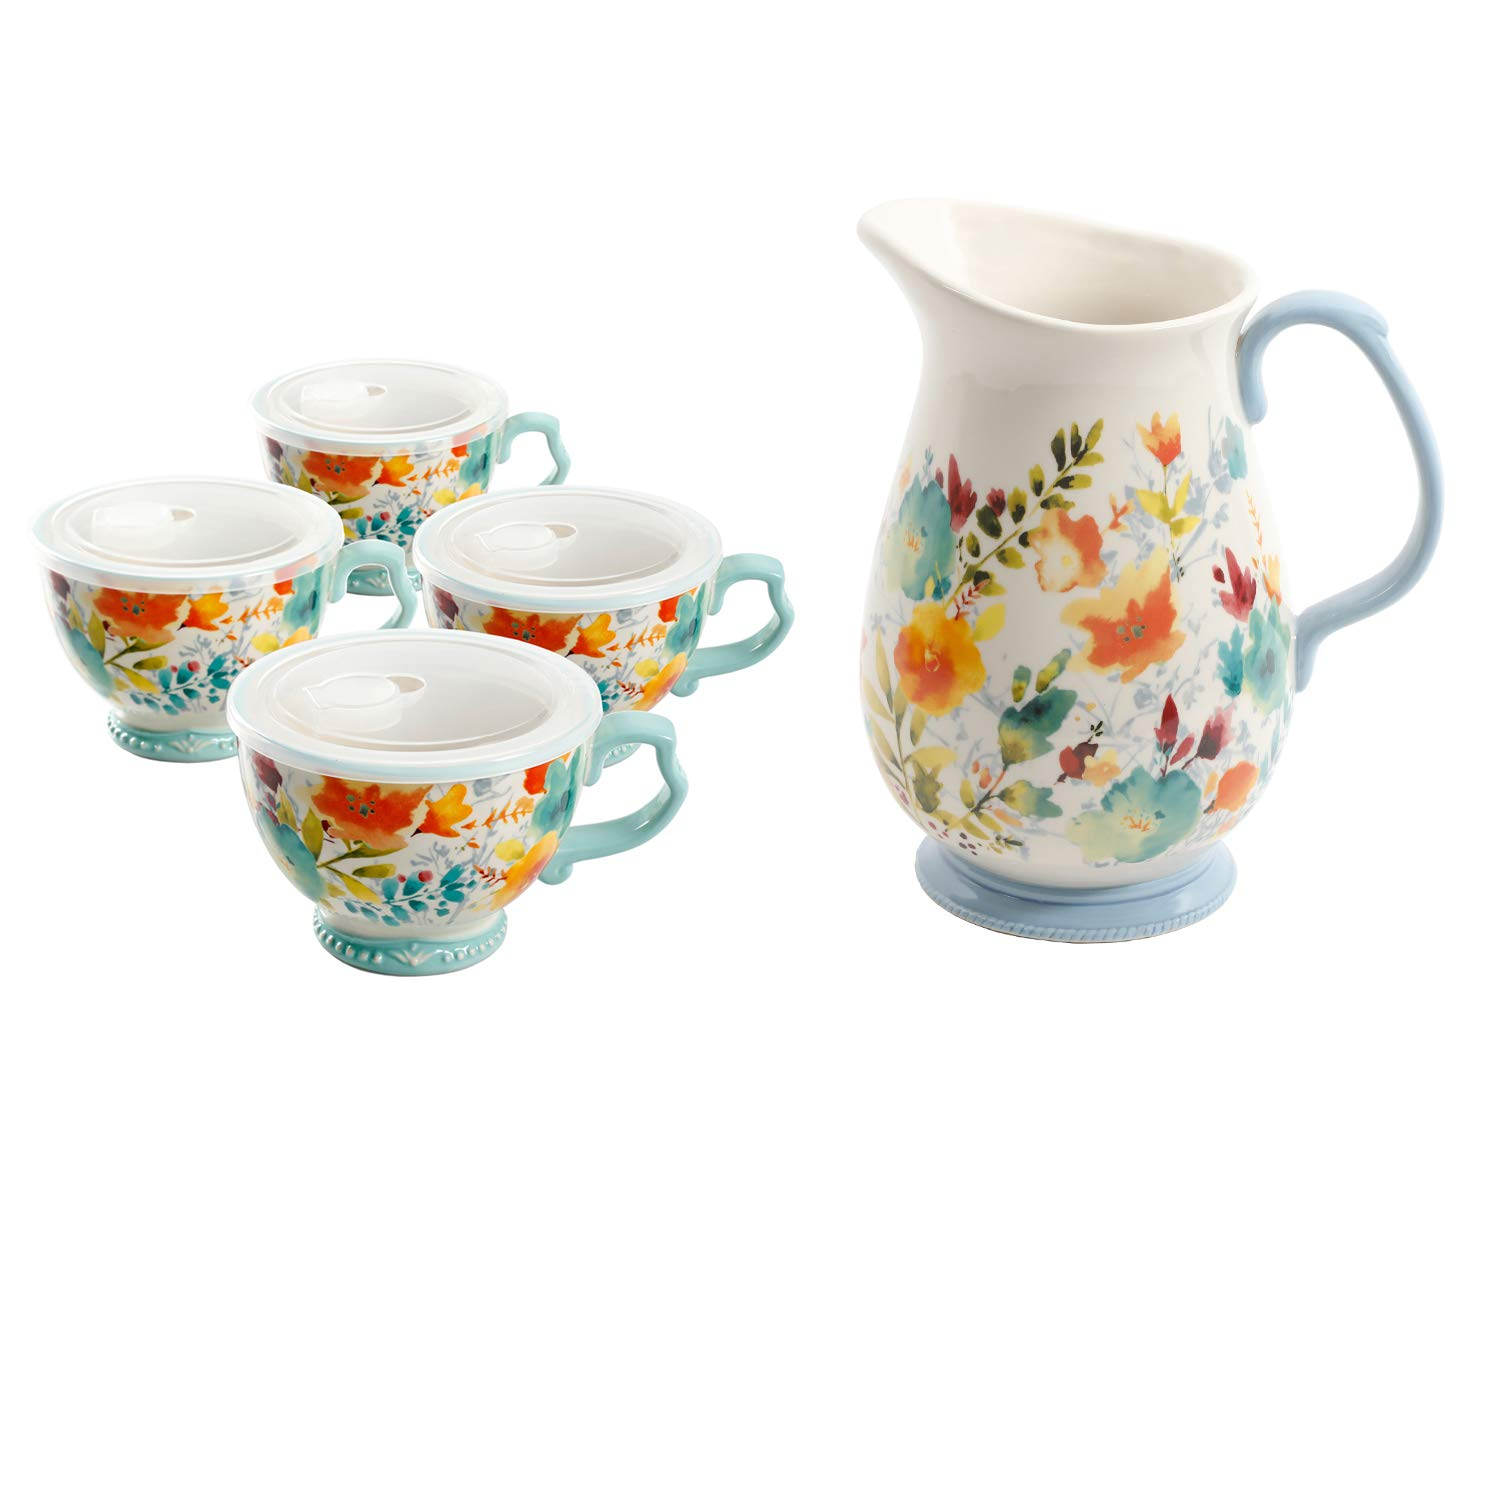 The Pioneer Woman Willow 27oz Cup with Lid, Set of 4 bundle with The Pioneer Woman 3.2 Quart Pitcher